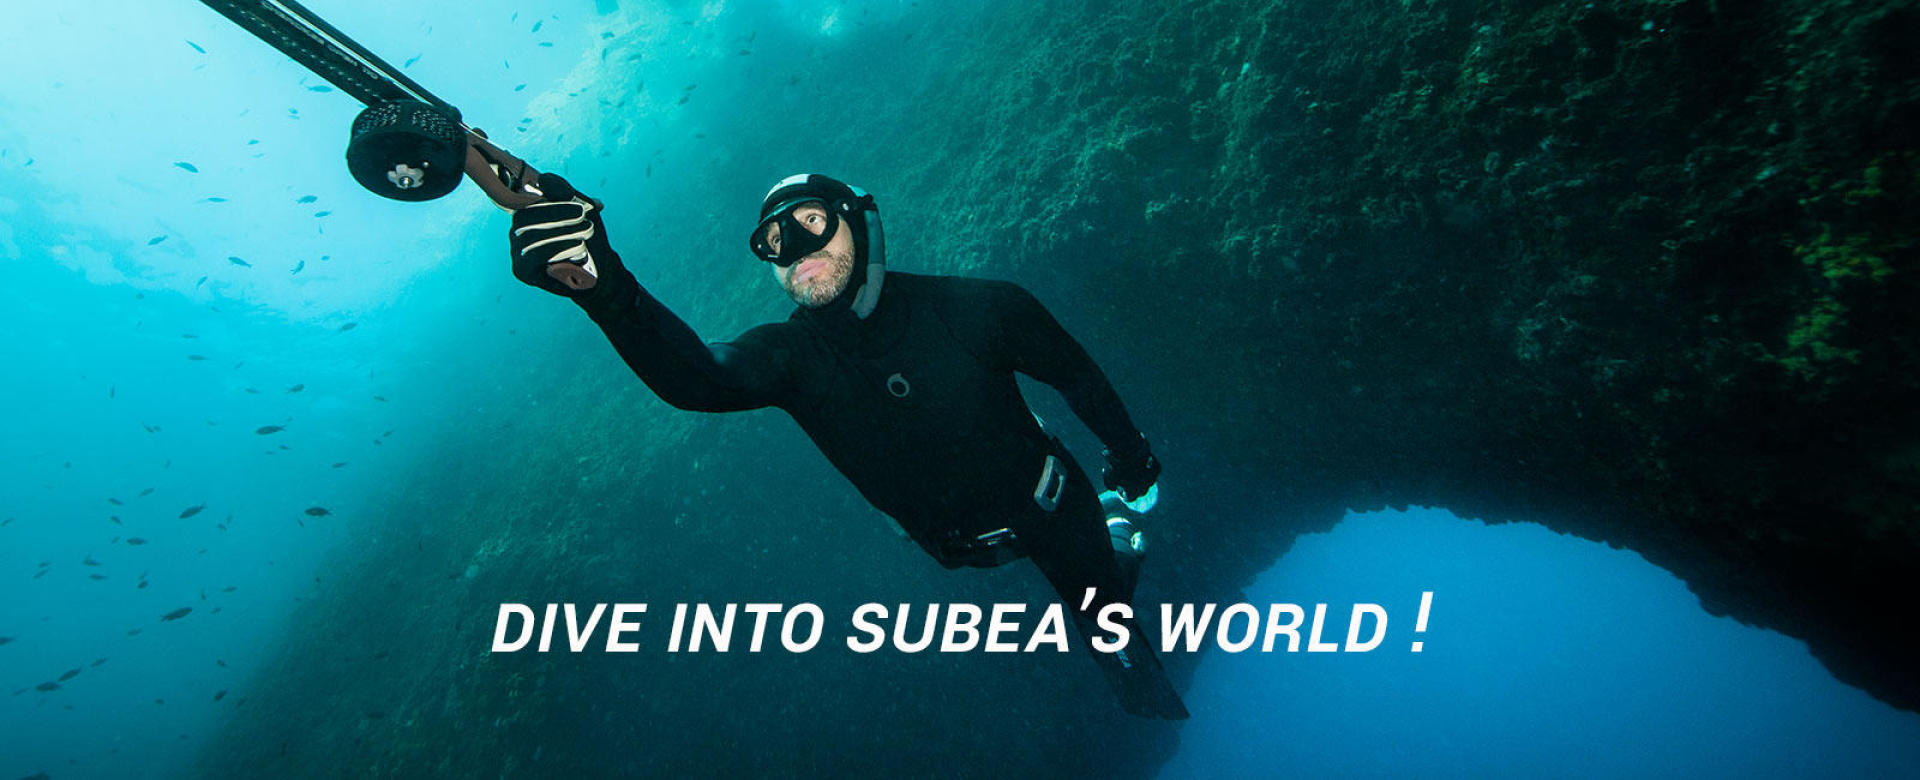 spearfishing freediving subea